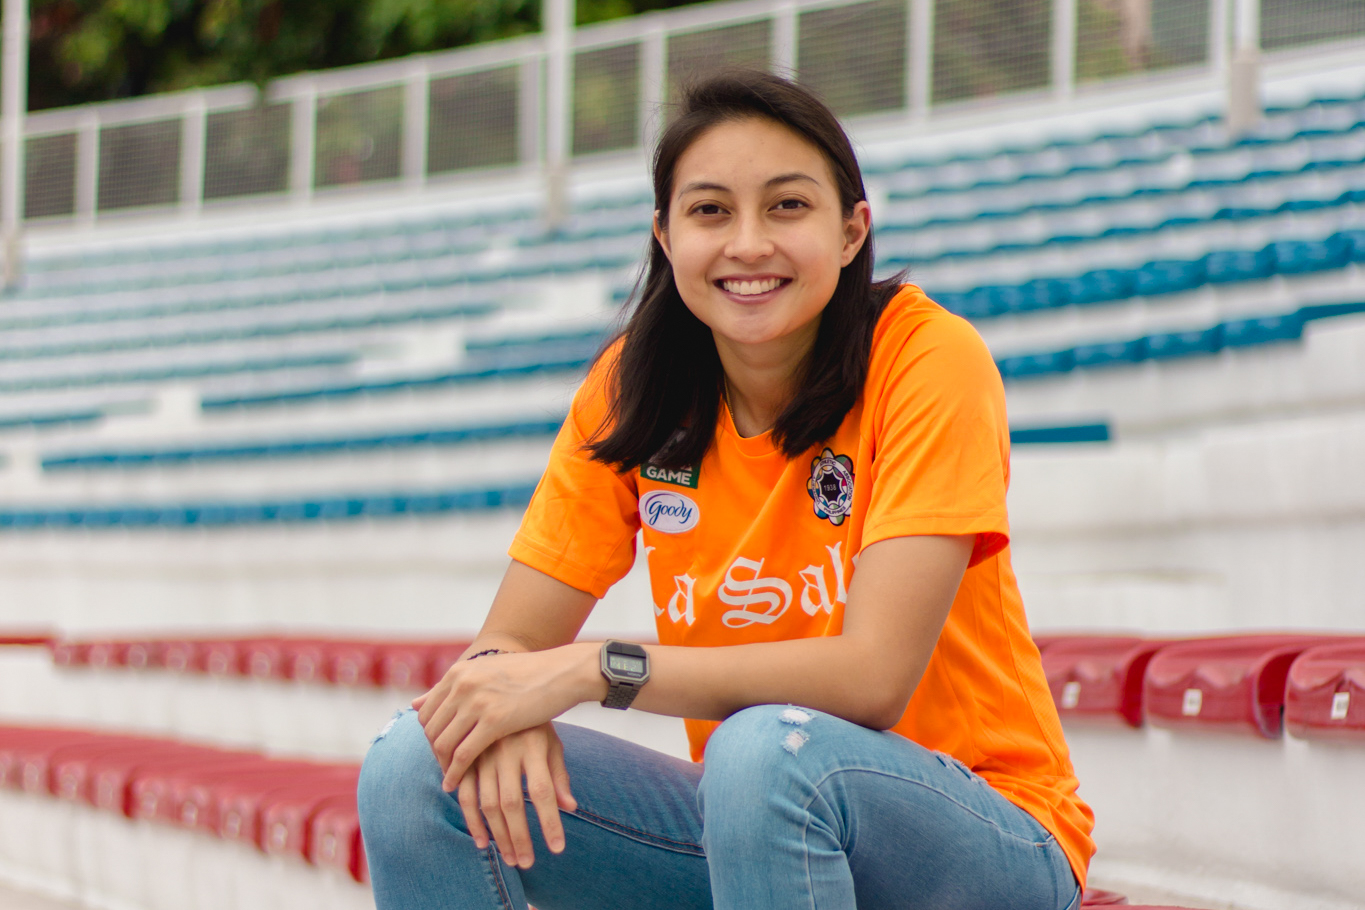 Athlete revisited: Inna Palacios guards women's football legacy at the net